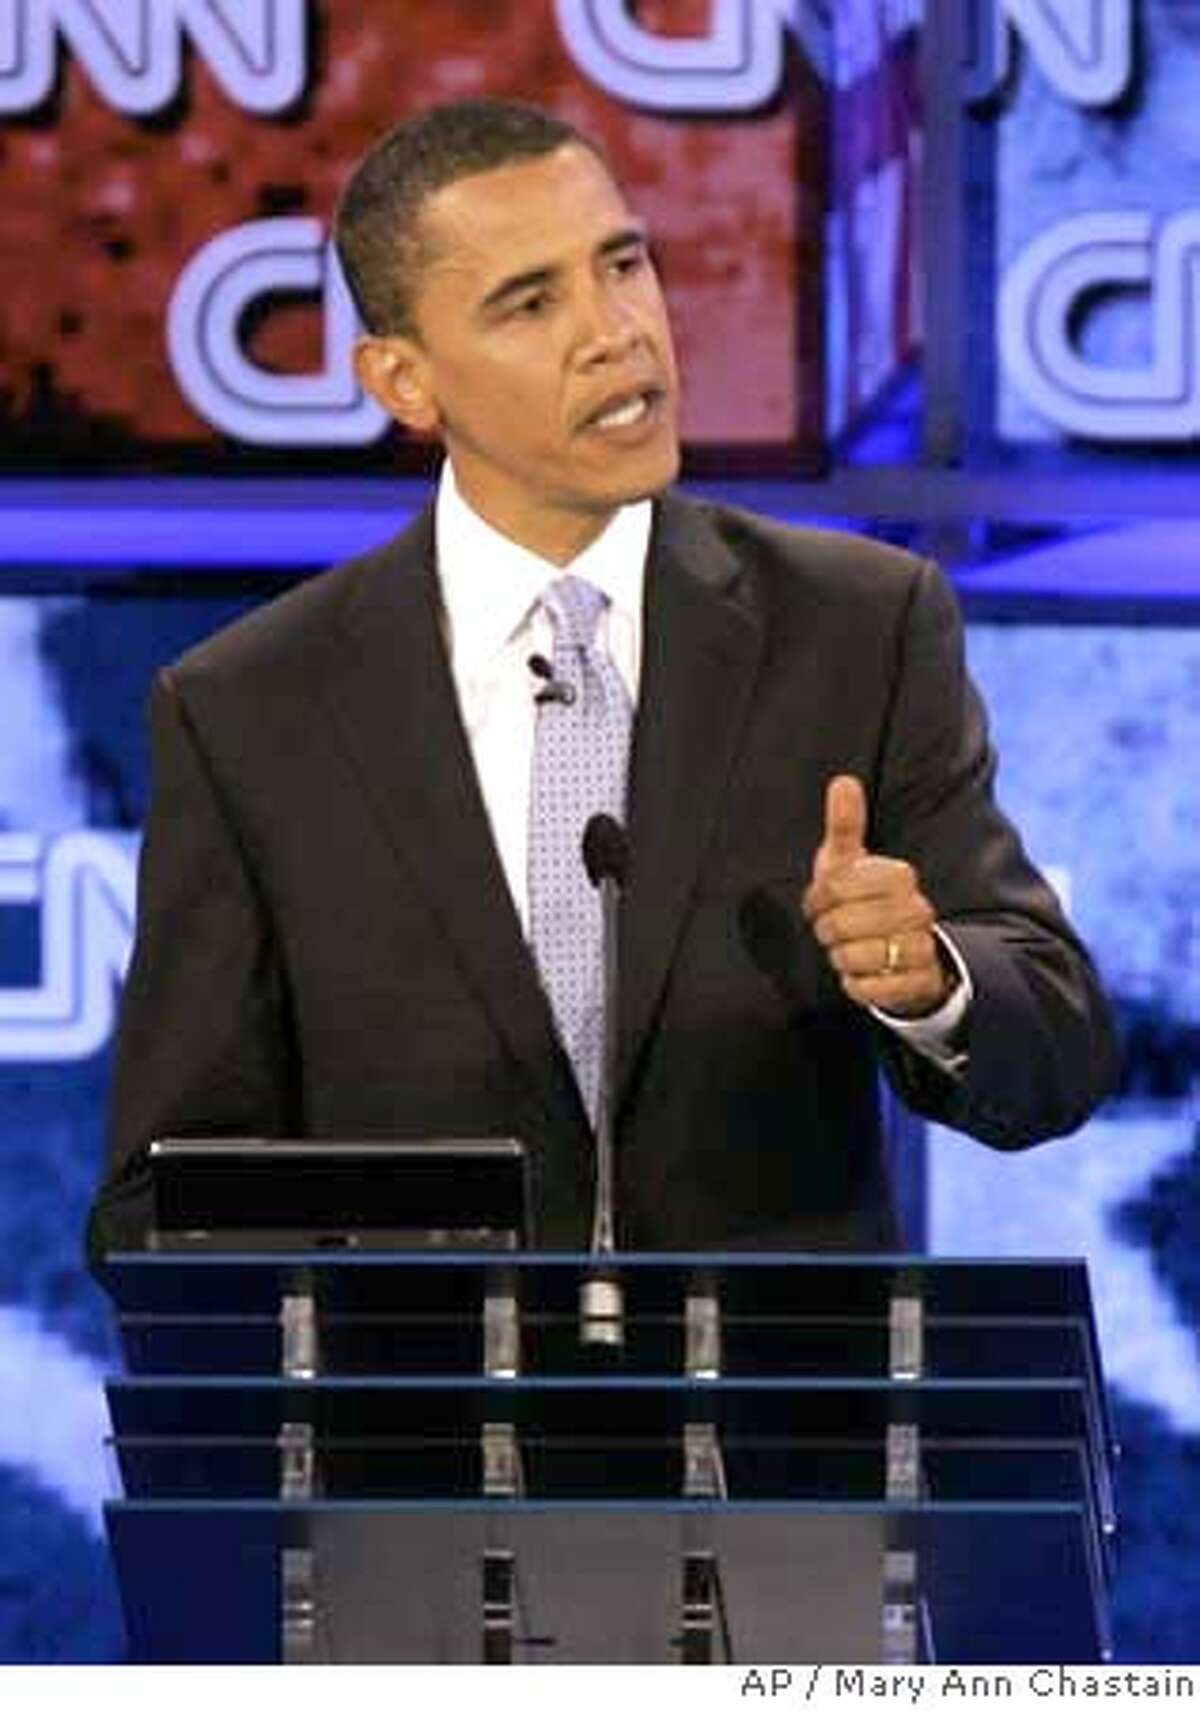 Democratic presidential hopeful Sen. Barack Obama, D-Ill. gestures during the debate sponsored by CNN, YouTube and Google at The Citadel military college in Charleston, S.C., Monday, July 23, 2007. (AP Photo/Mary Ann Chastain)